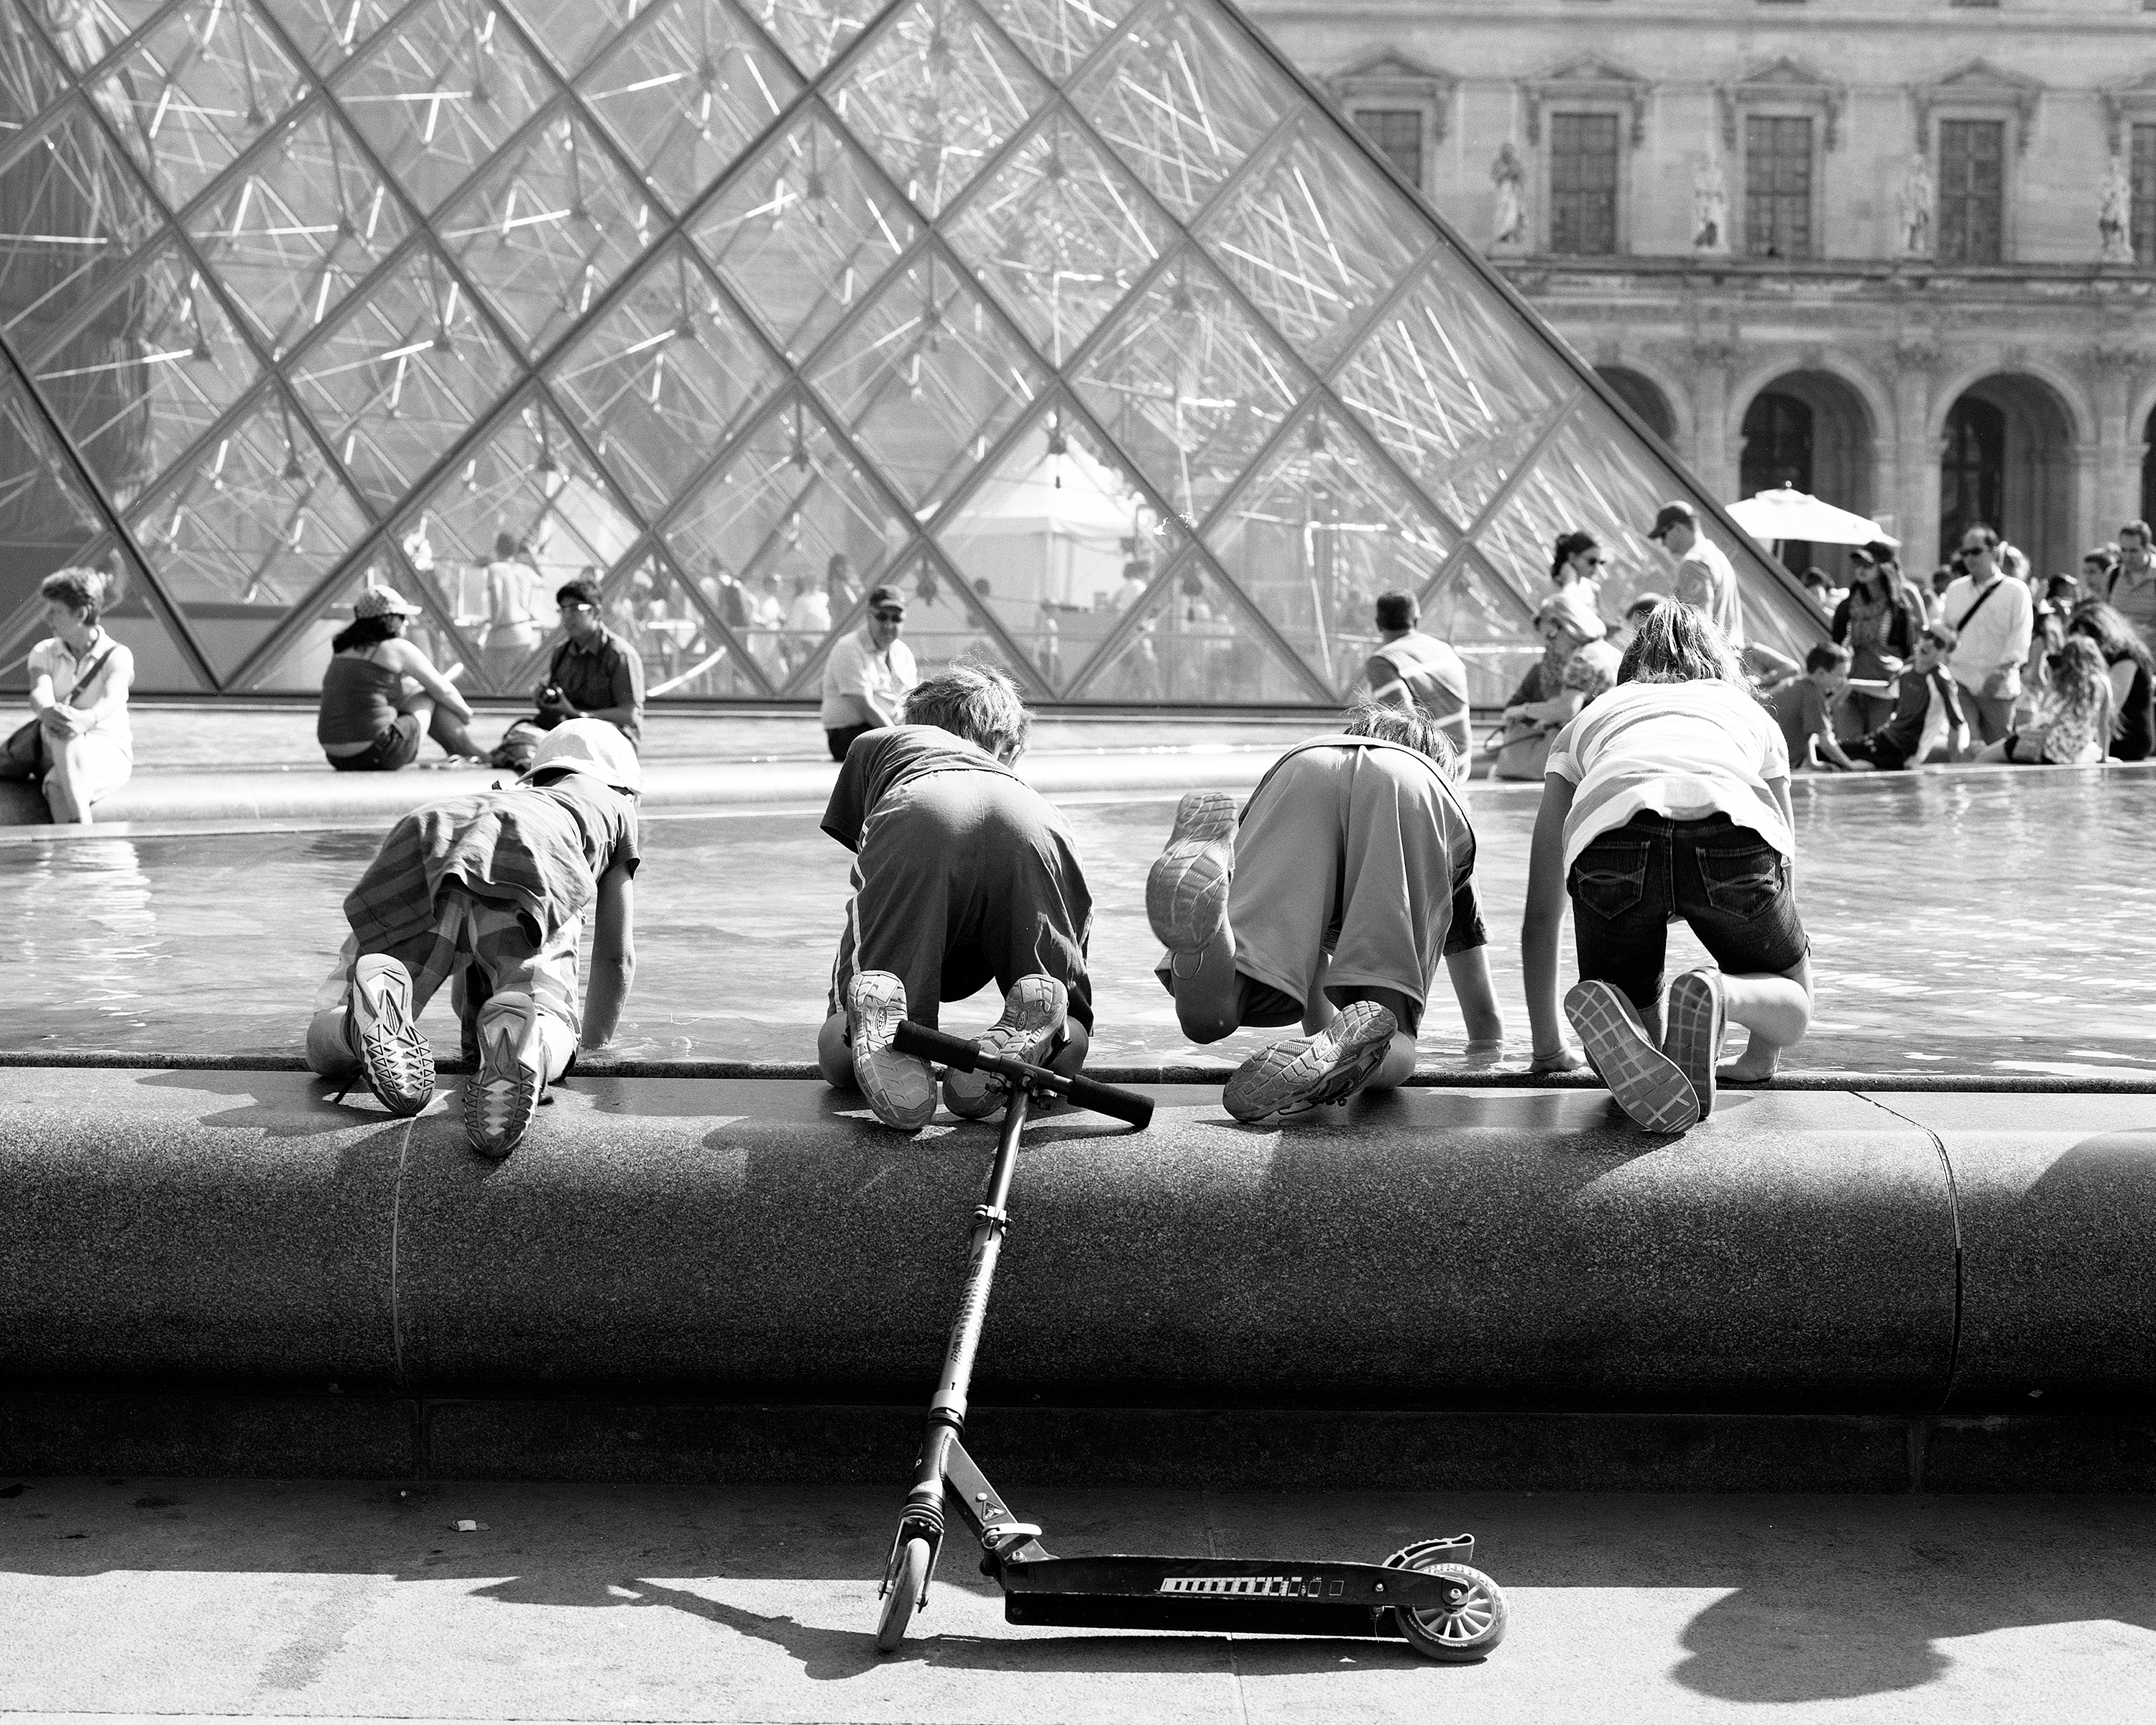 louvre museum               paris france black and white film street photography children               scooter art people youth fountain pyramid